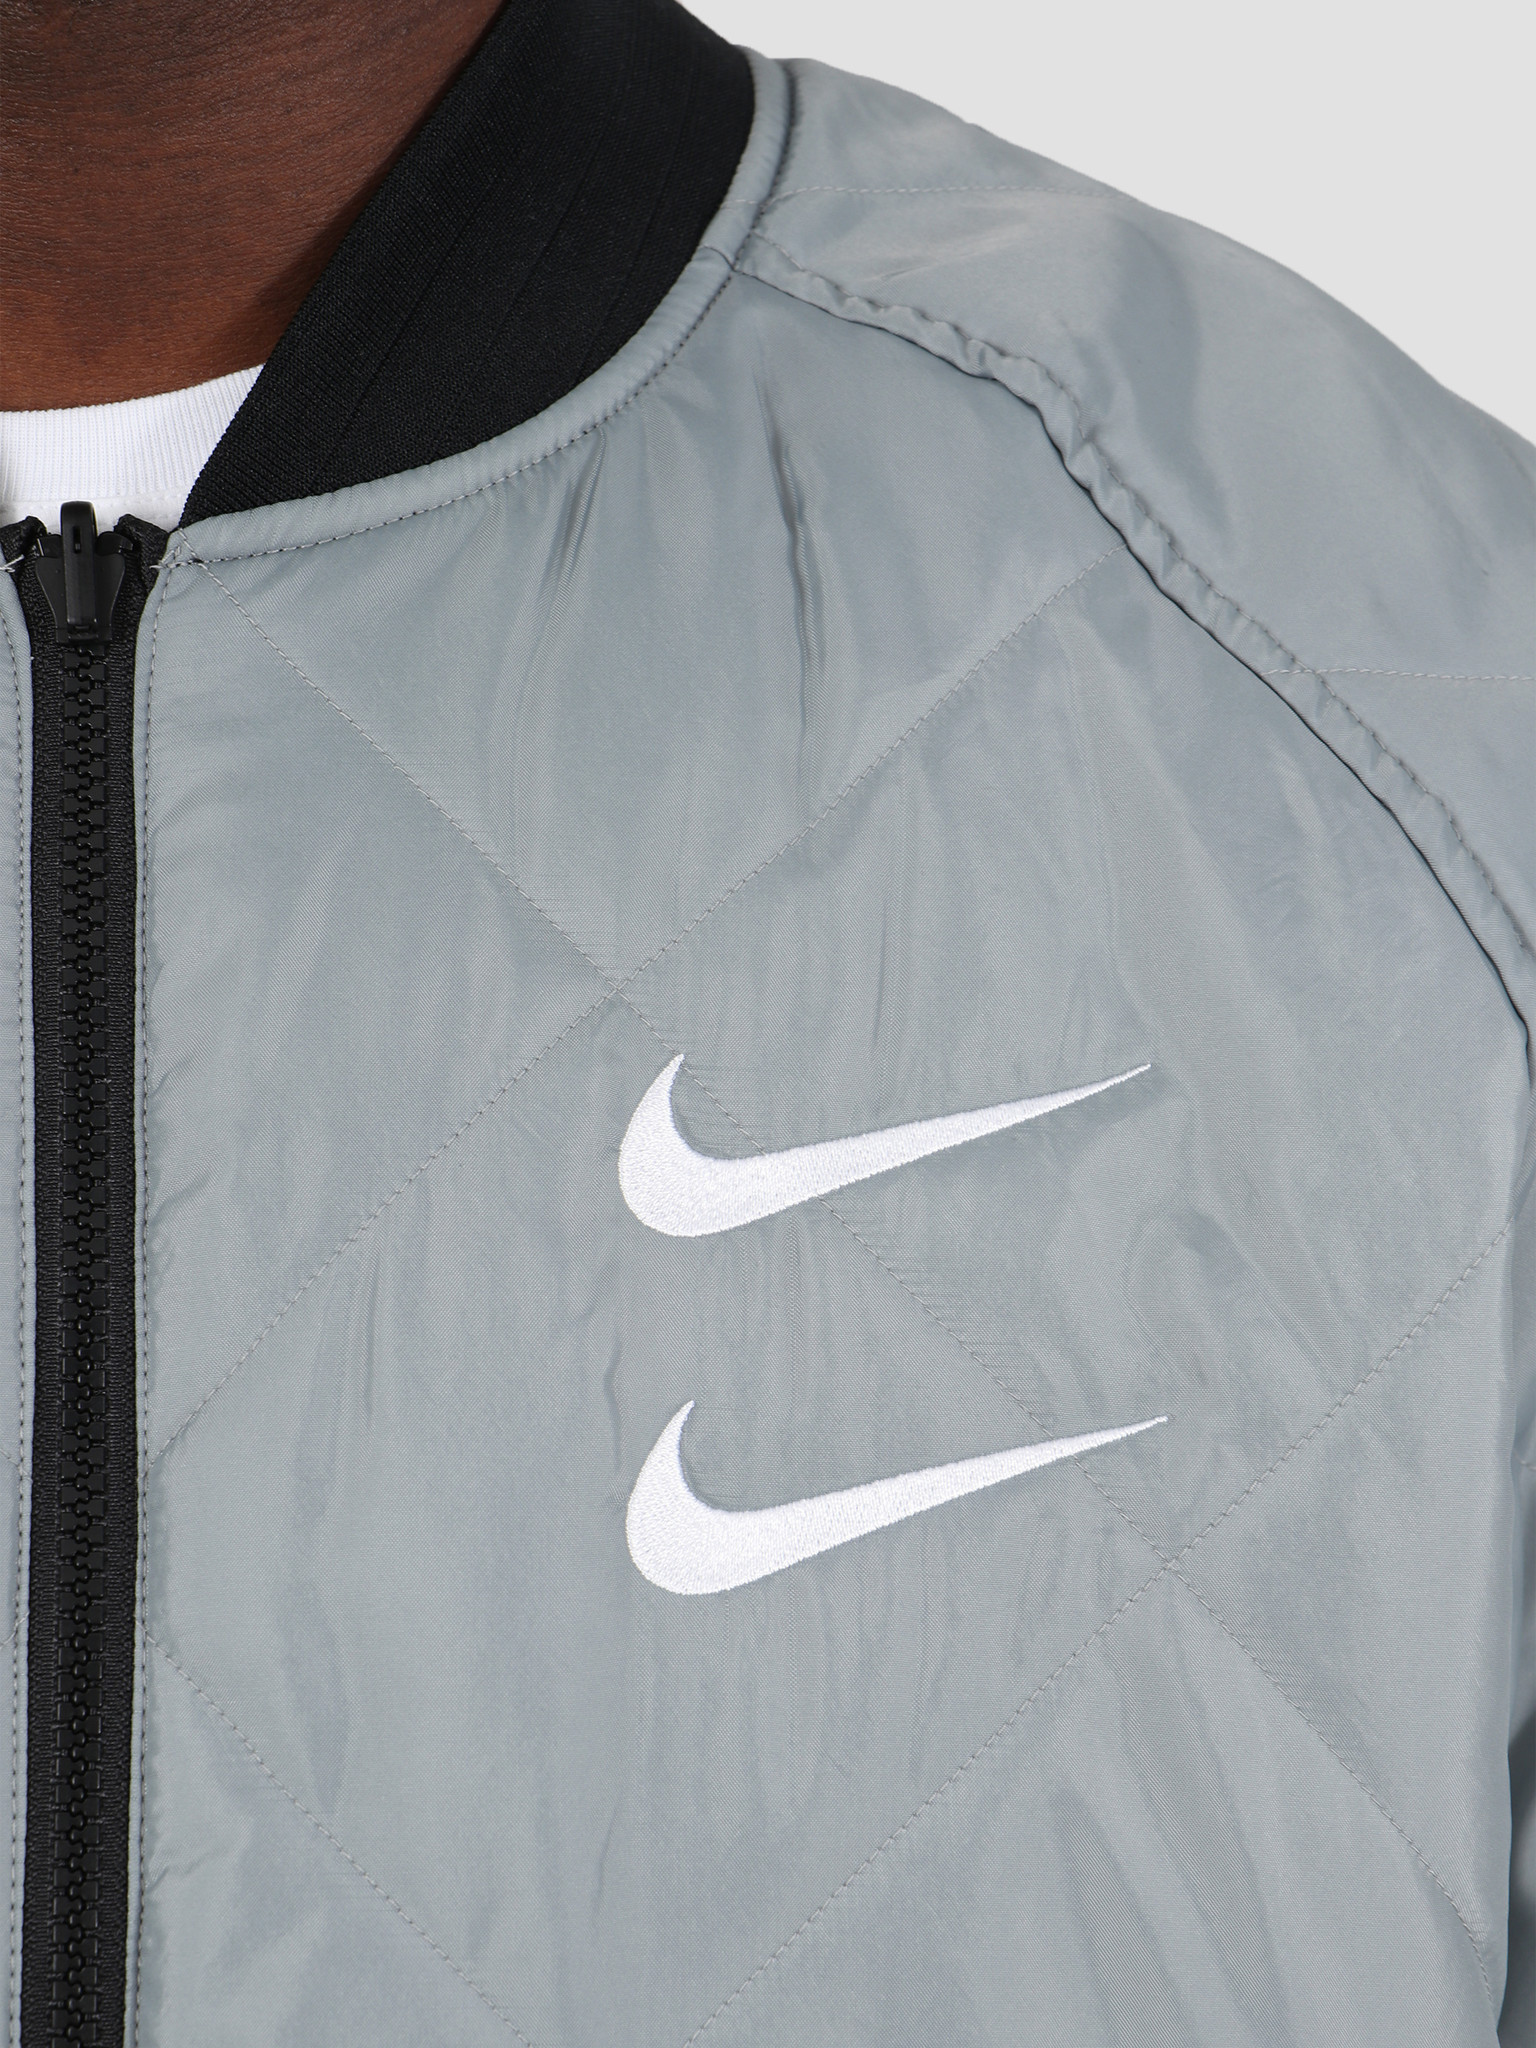 Nike Nike NSW Swoosh Bomber Jacket Woven Black Particle Grey White CJ4875-010